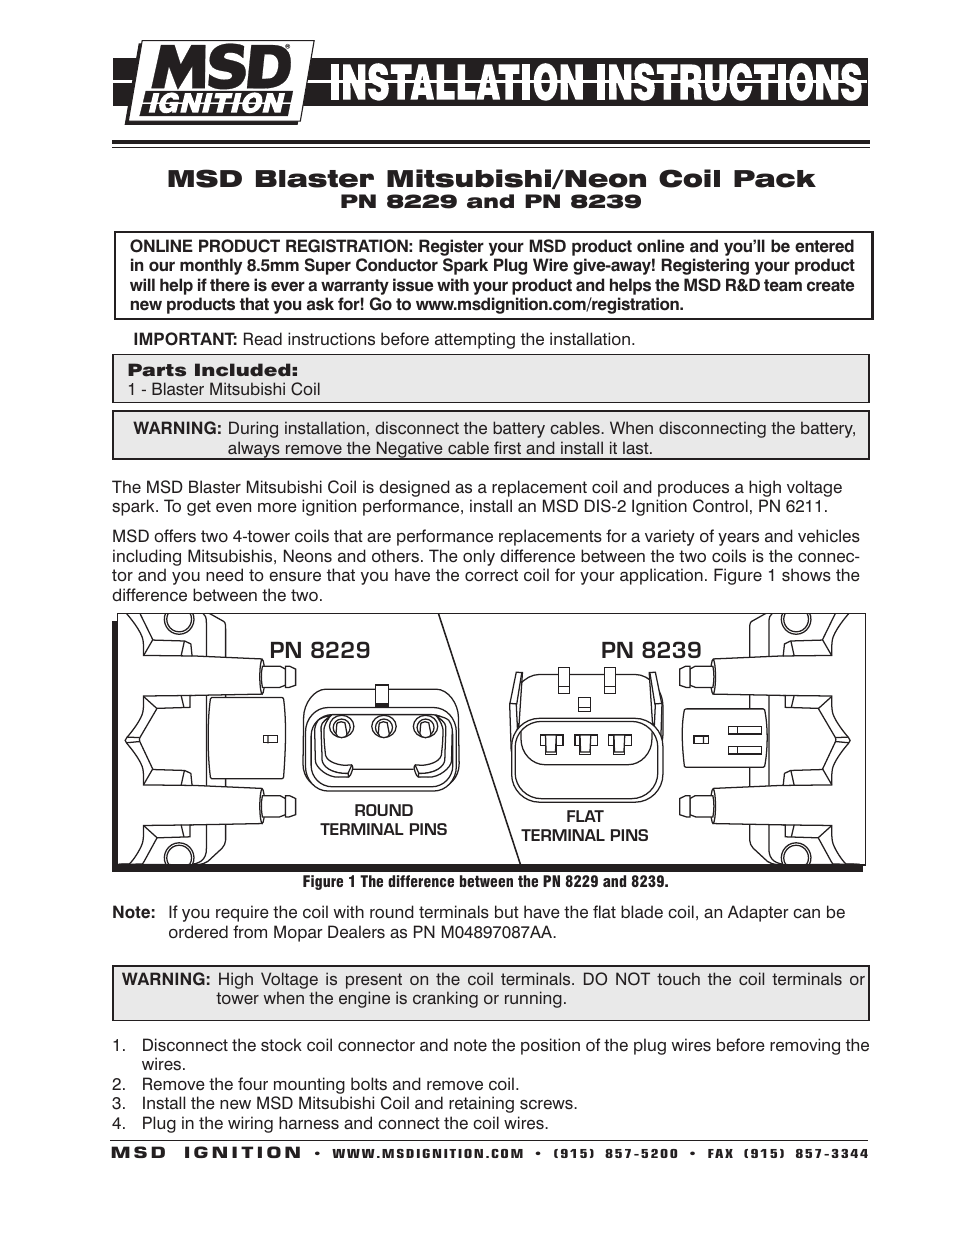 Dodge Coil Connector Wiring Library Mitsubishi Harness Connectors Msd 8239 1996 On Installation User Manual 2 Pages